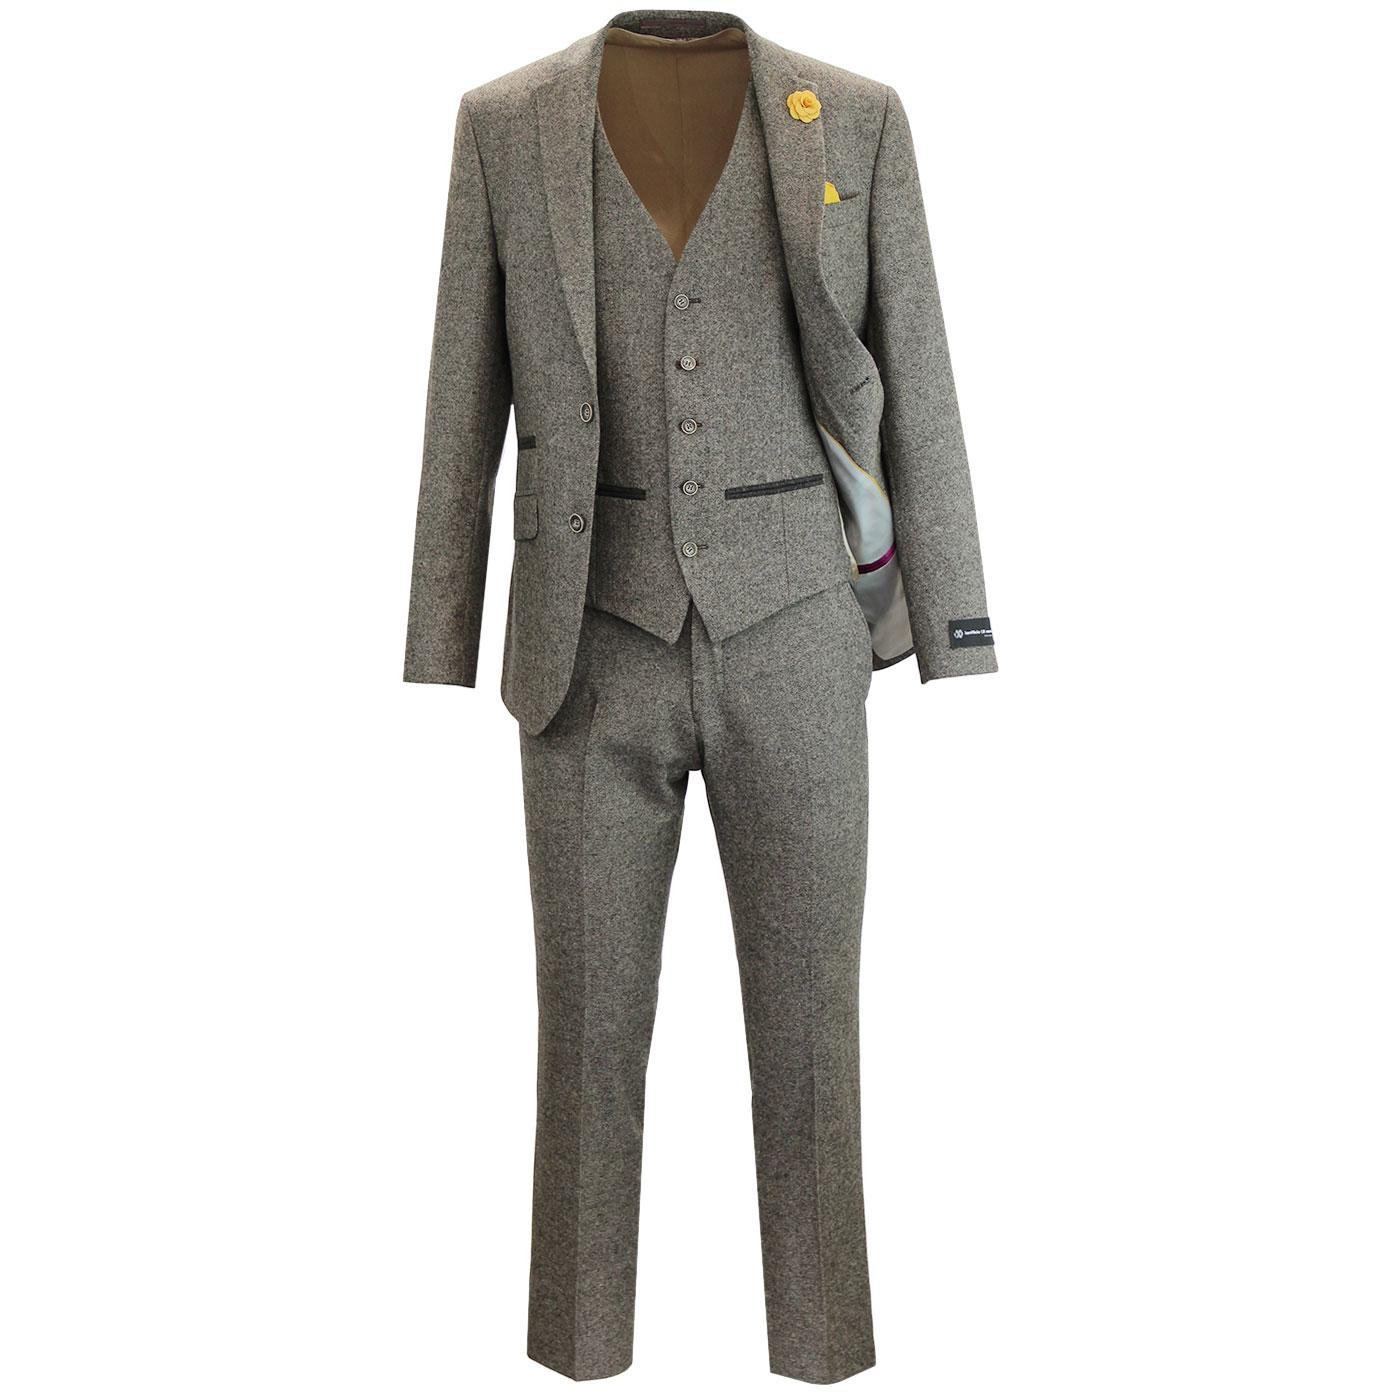 Mens Retro 60s Mod 3 Piece Donegal Suit in Taupe